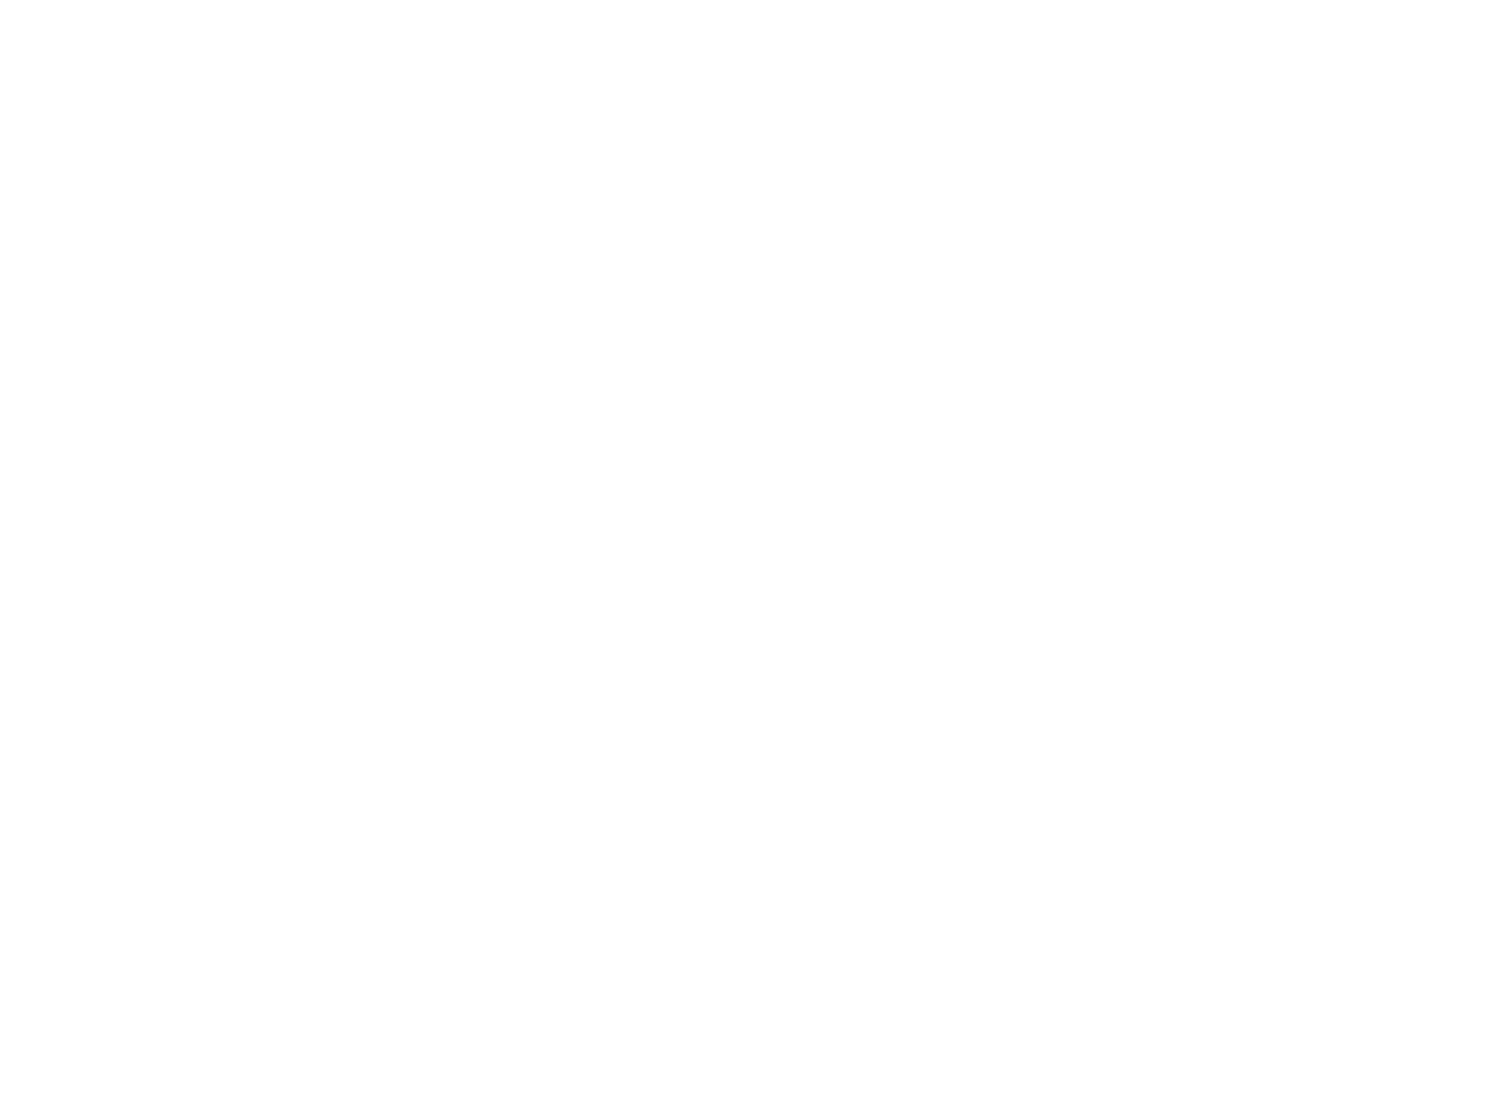 White_Holland20_logo.png